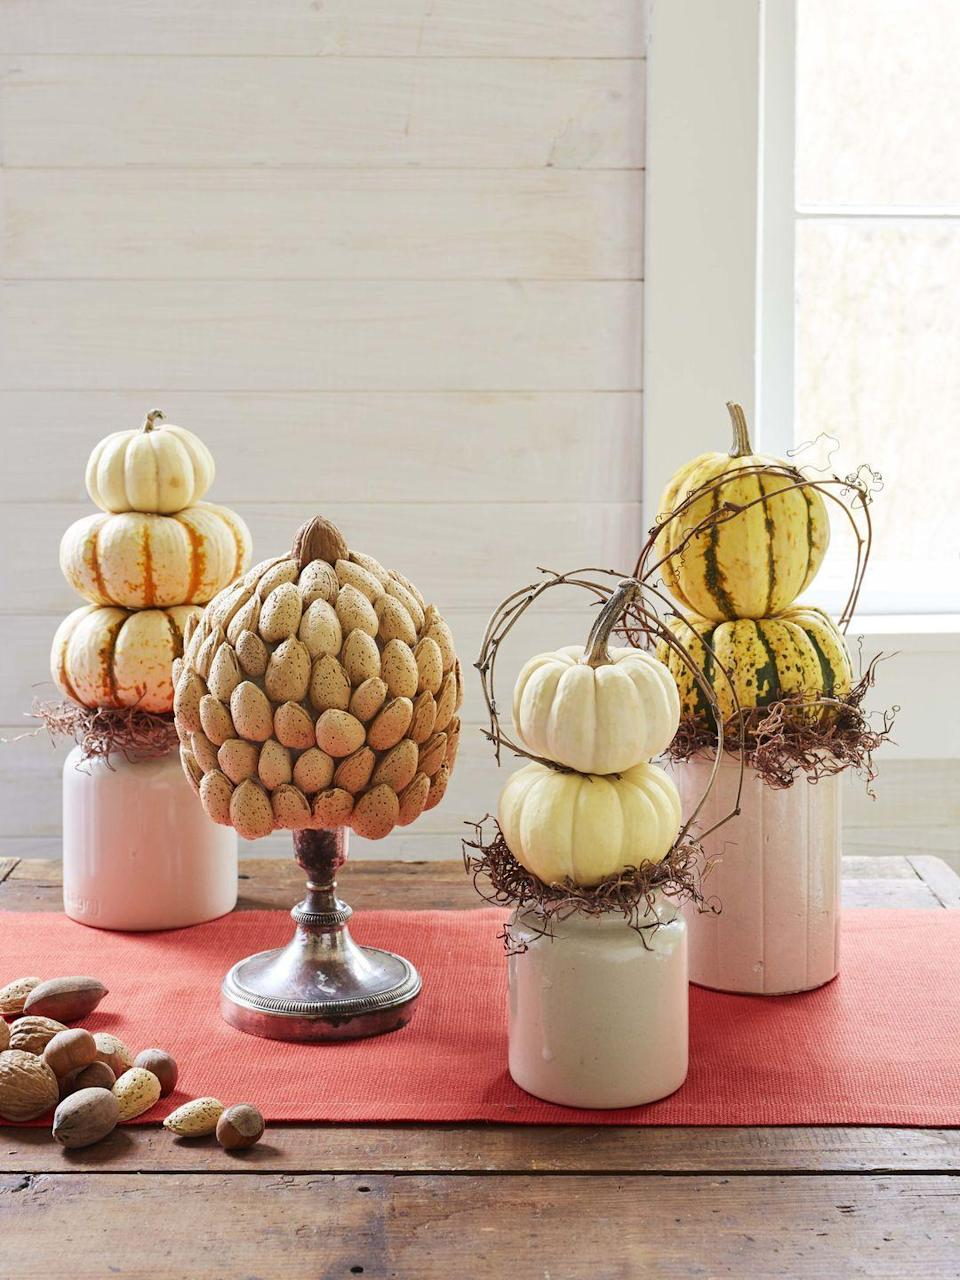 """<p>Gather a grouping of these tabletop topiaries down the middle of the table or on a buffet. <strong><br></strong></p><p><strong>To make the nut topiaries,</strong> lightly spray styrofoam craft balls with brown paint. Once dry, hot glue nuts to styrofoam balls in an orderly pattern, as shown. For the walnut topiary, start with a middle equator row and add rows up and down from there. Add hazelnuts to fill any gaps. For the raw almond topiary, start at the top and work your way down, gluing horizontal rows around the perimeter and overlapping slightly for full coverage. Leave space at bottom to rest on top of candlestick bases. Attach with hot glue, as needed.</p><p><strong>To make the pumpkin and squash topiaries,</strong> remove stems, except for the top pieces. Stack two pumpkins and secure using small wooden skewers or toothpicks. Skewer the bottom piece and place into crocks filled with floral foam. Cover foam with Spanish moss, and finish with grapevine accents.</p><p><a class=""""link rapid-noclick-resp"""" href=""""https://www.amazon.com/Anna-Sarah-Almonds-California-Resealable/dp/B08L41NFQK/ref=sr_1_1_sspa?tag=syn-yahoo-20&ascsubtag=%5Bartid%7C10050.g.2063%5Bsrc%7Cyahoo-us"""" rel=""""nofollow noopener"""" target=""""_blank"""" data-ylk=""""slk:SHOP NUTS"""">SHOP NUTS</a></p>"""